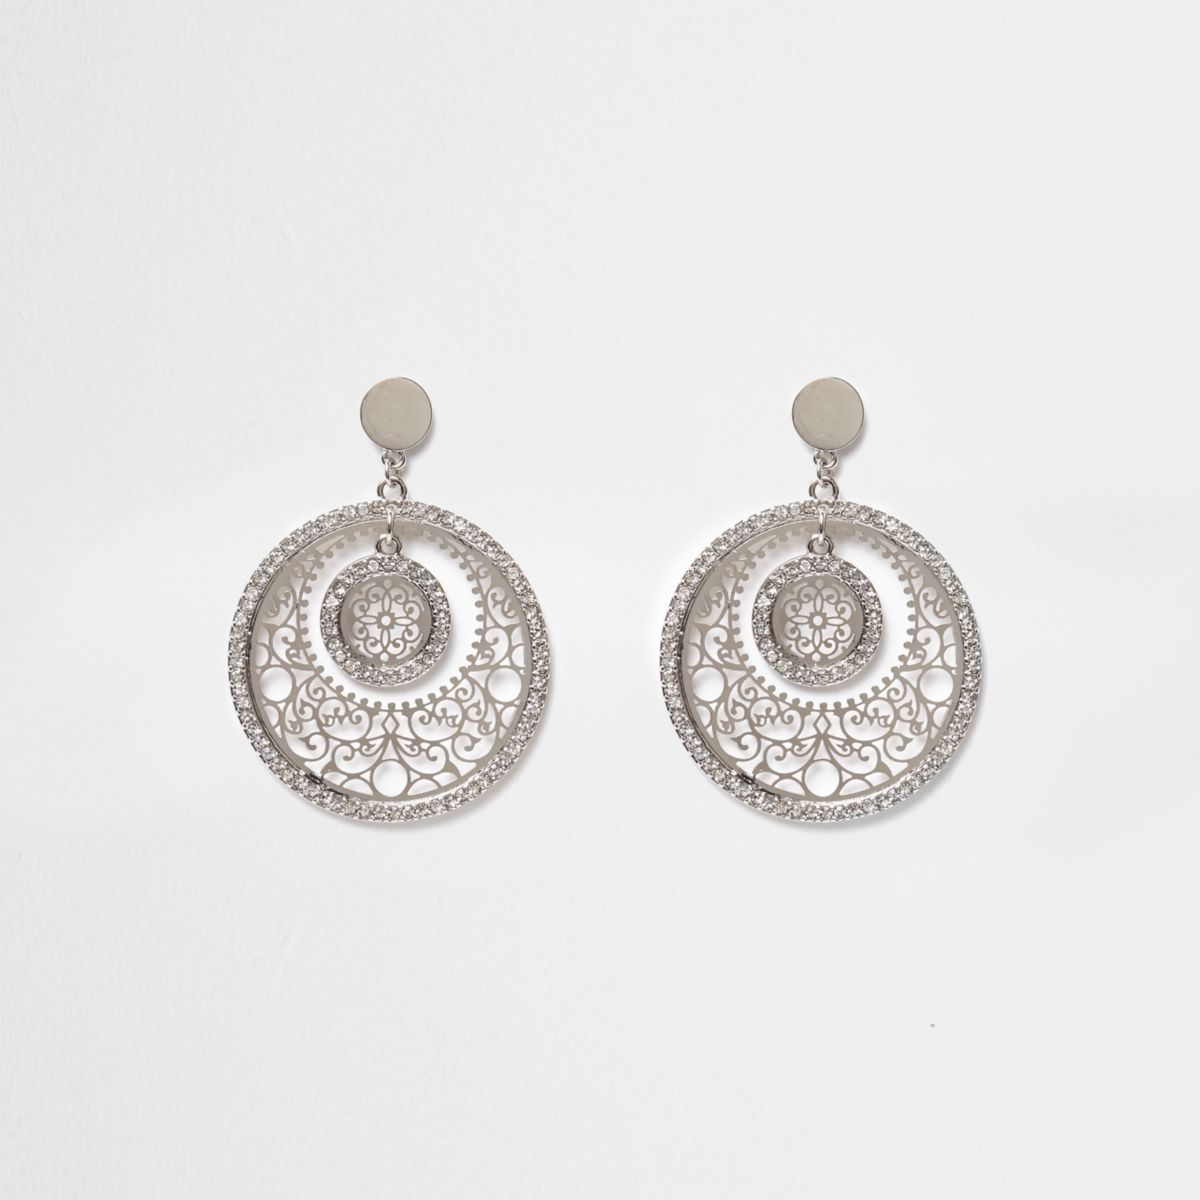 Silver tone filigree disc drop earrings